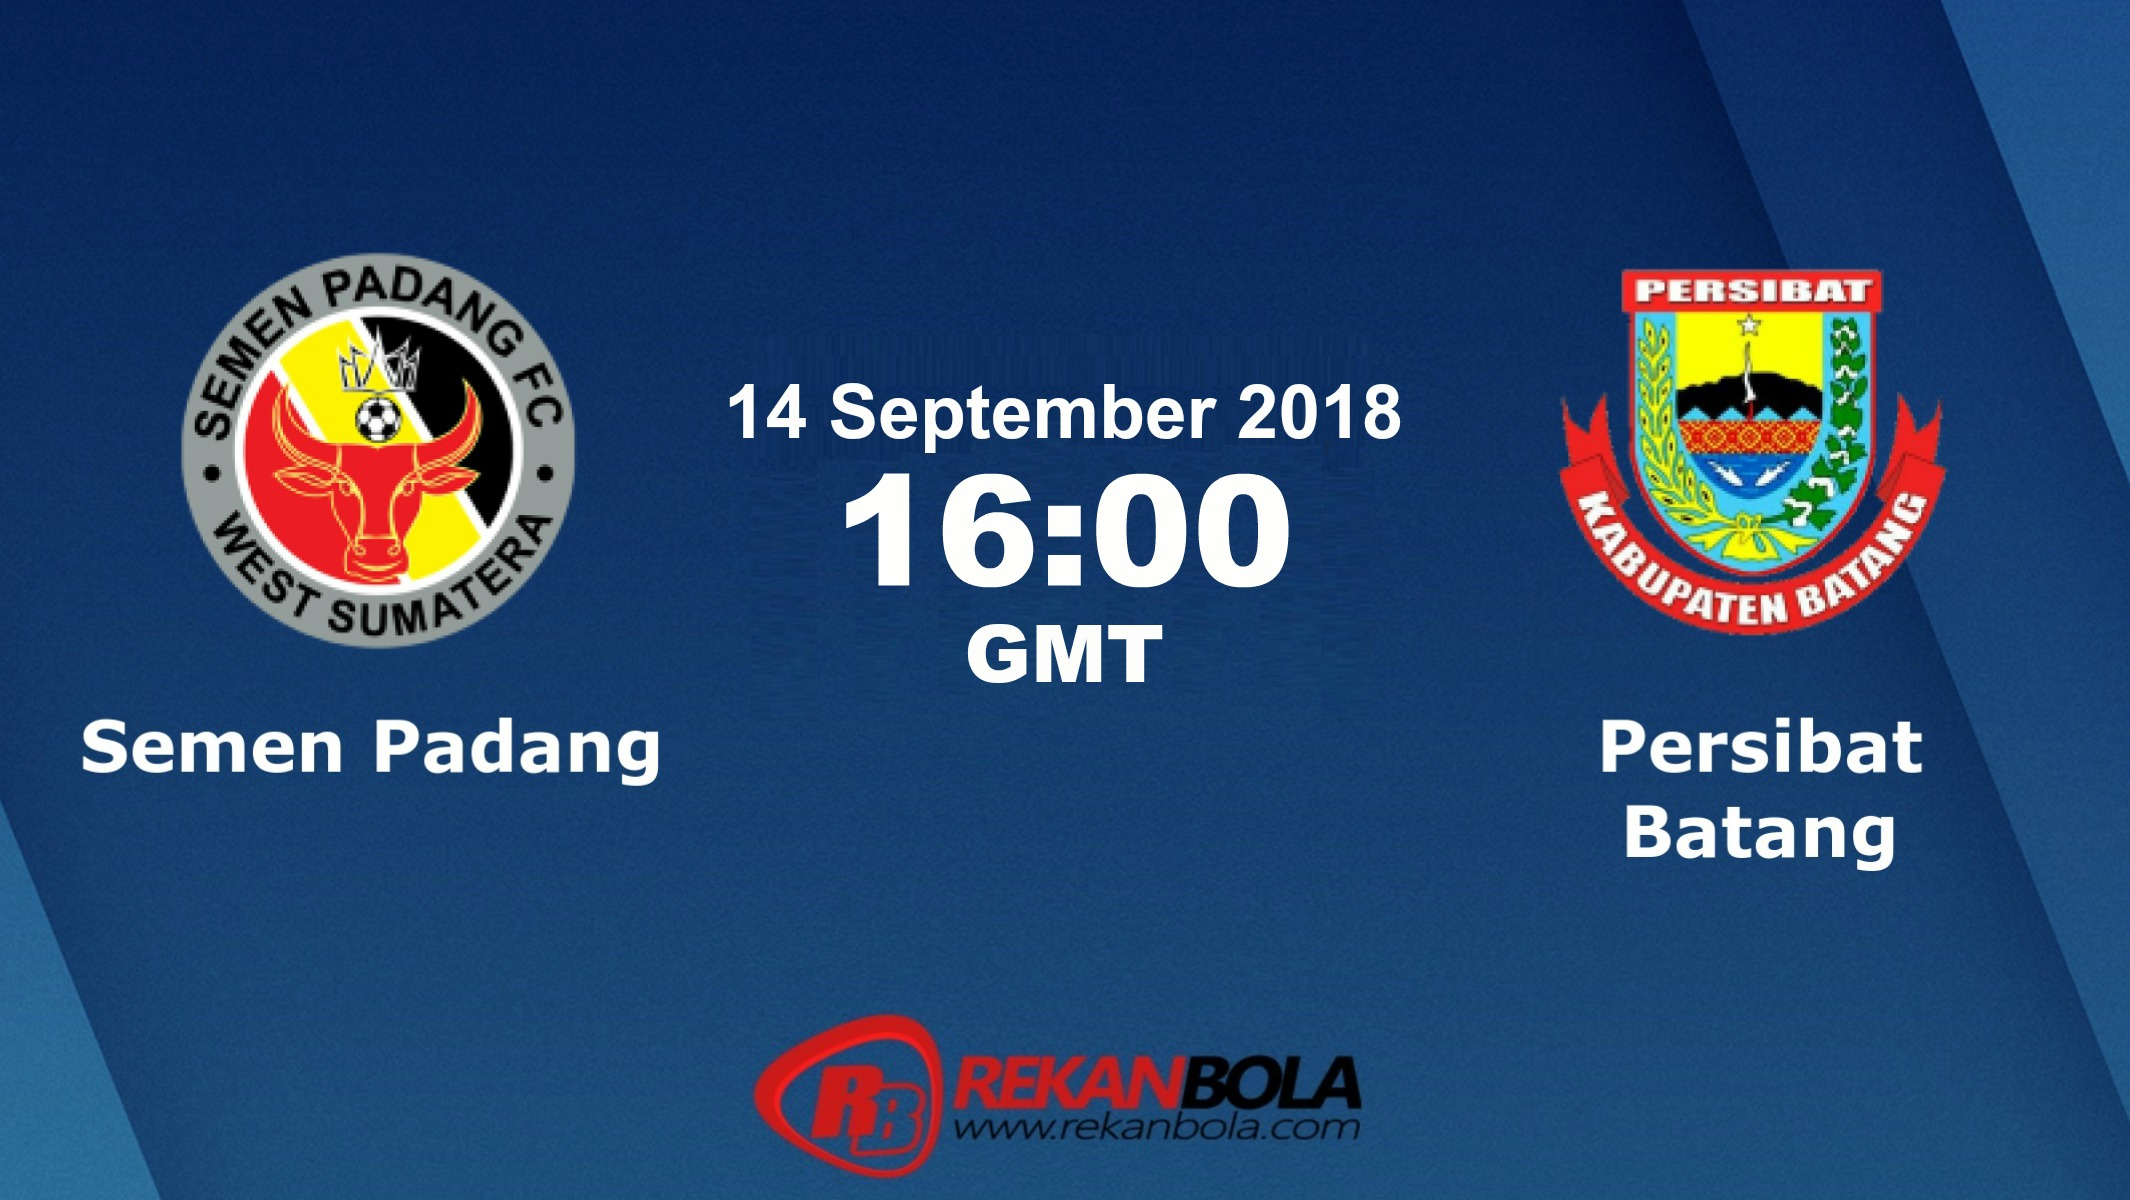 Nonton Siaran Live Streaming Semen Padang Vs Persibat 14 September 2018